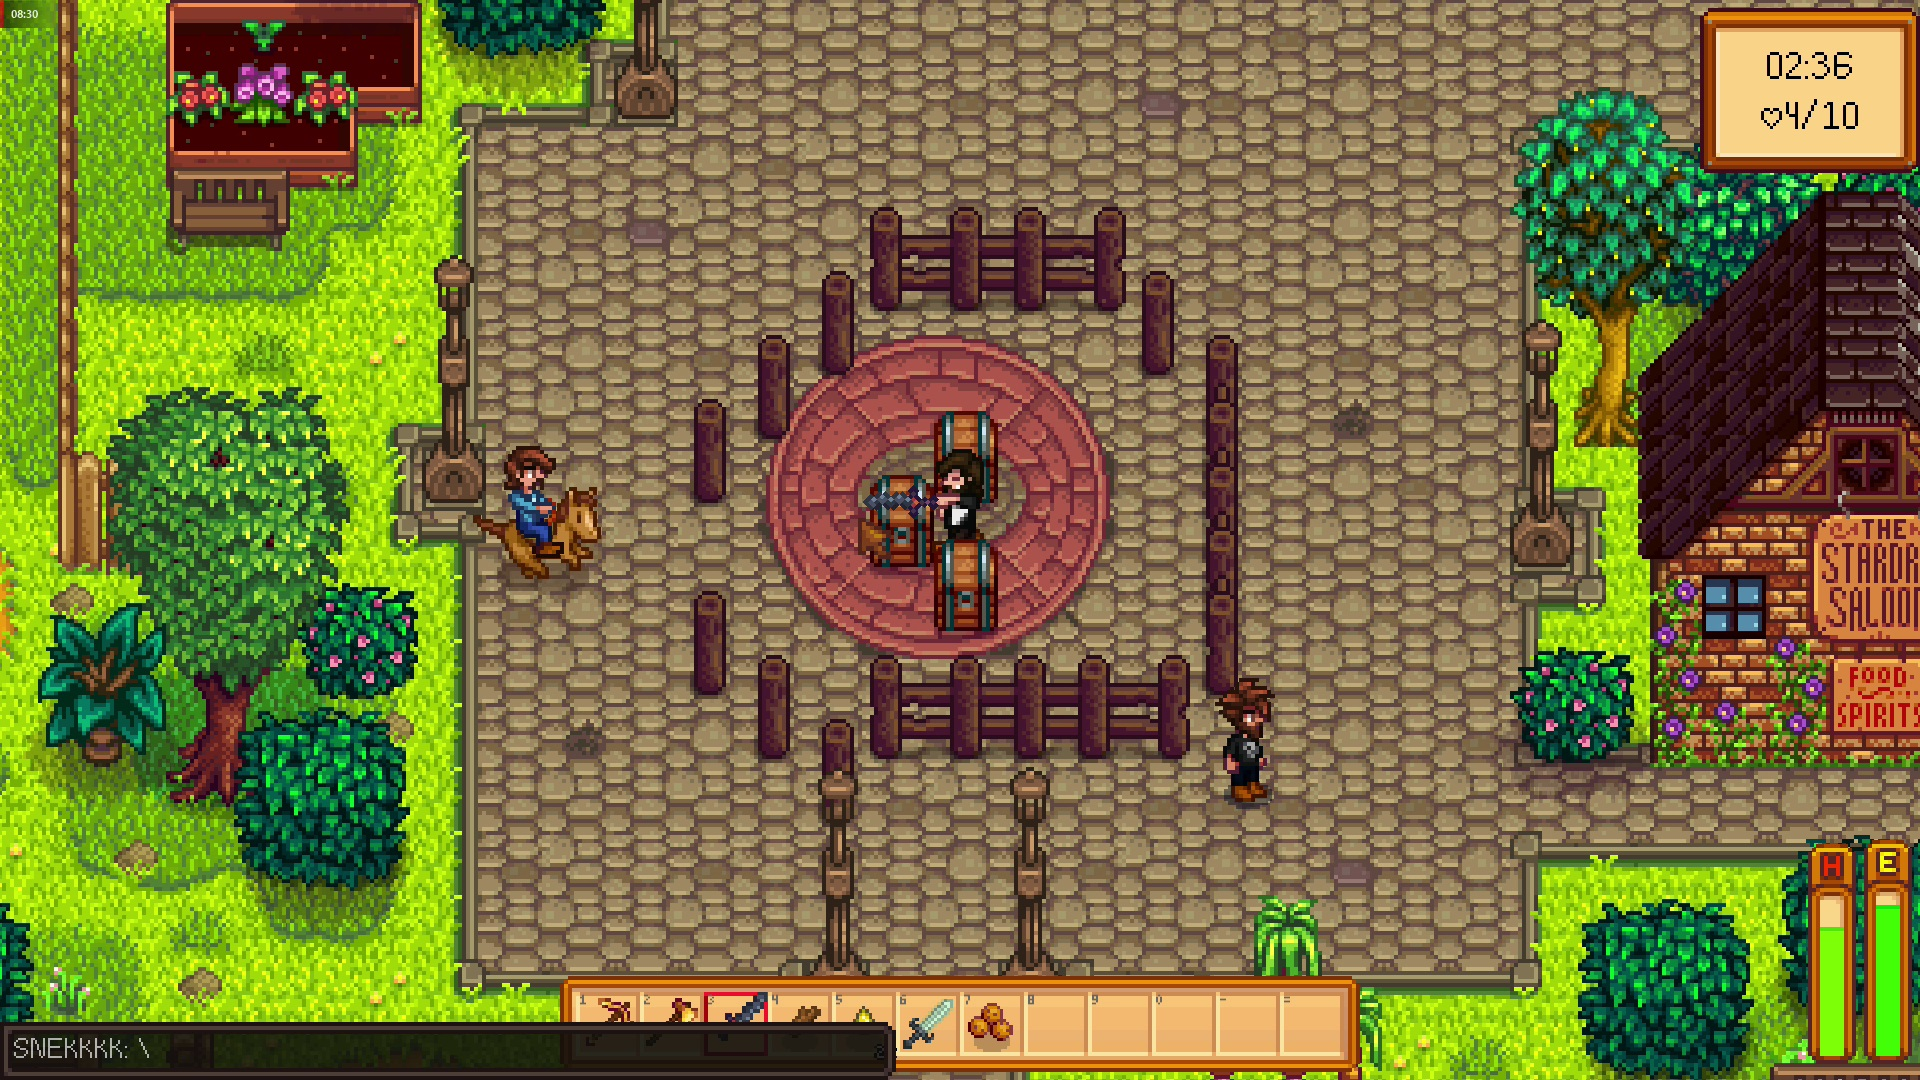 Stardew Valley Battle Royalley is the battle royale mod we've been